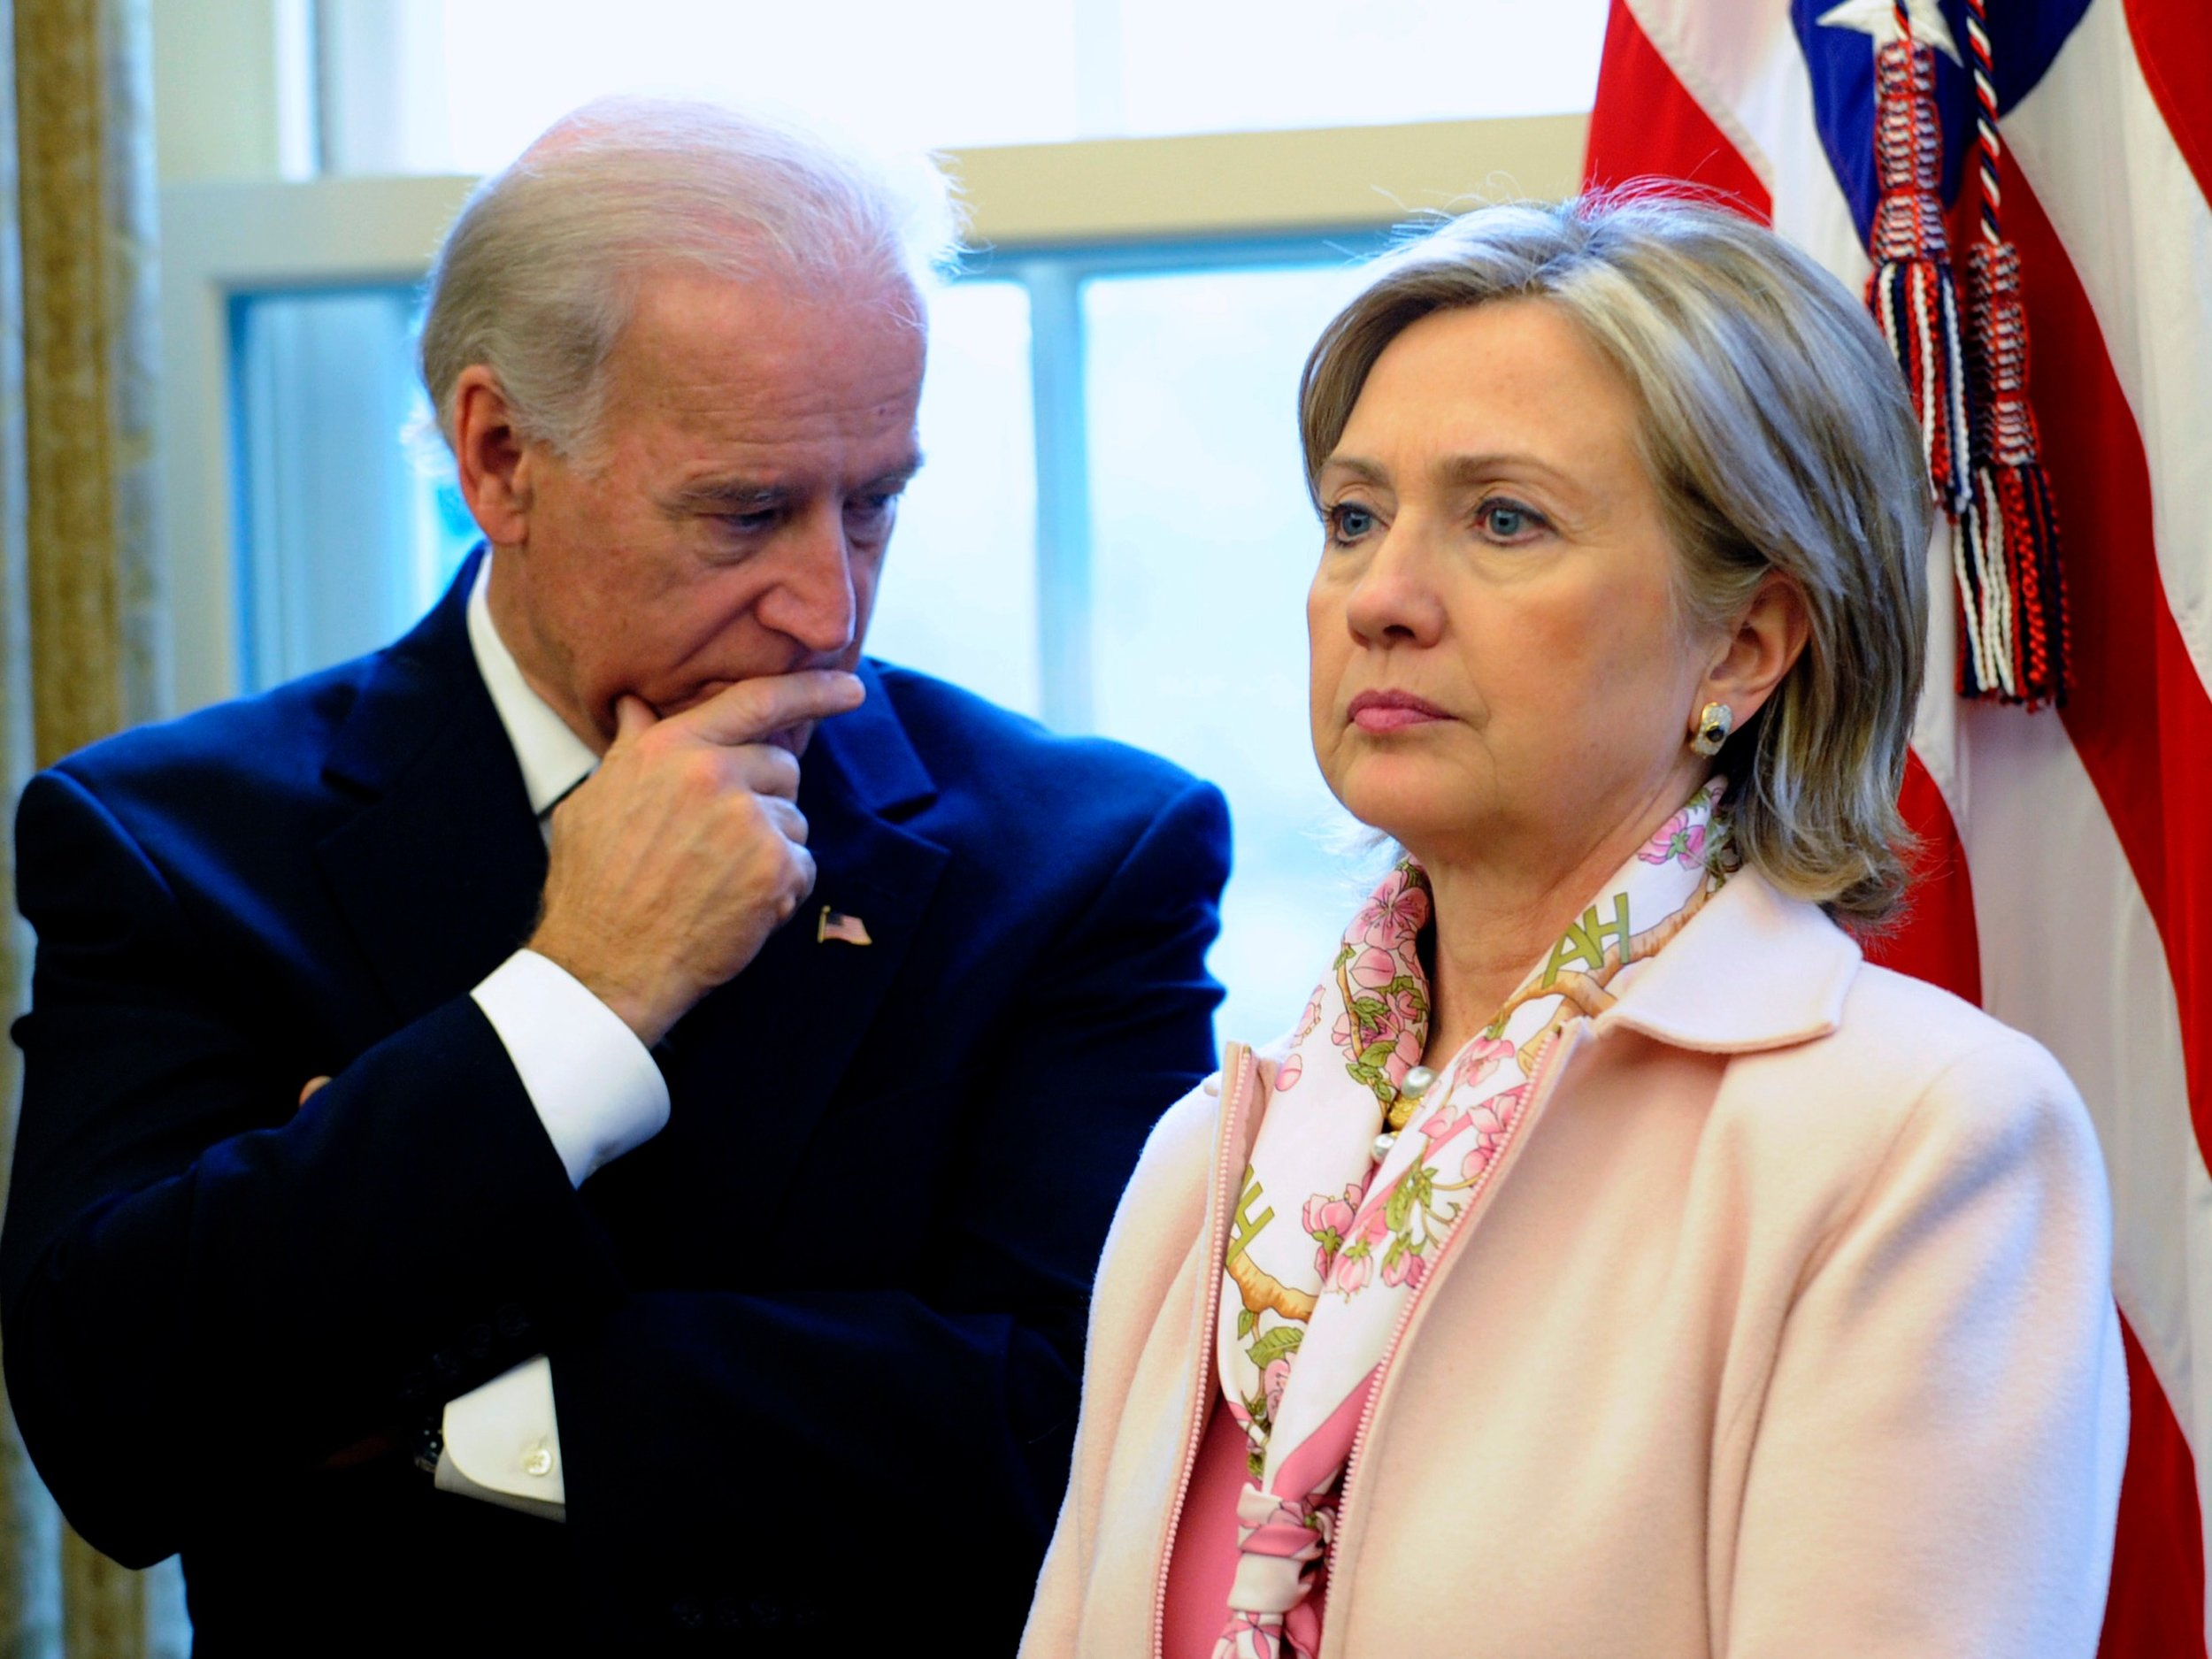 Biden:  Do you ever miss those talks we had on the elevators?  Hillary:  No.  Biden:  Come on. Remember how we'd always ask you about life on the flotilla?  Hillary:  This conversation is over.  Biden:  Tell me again about your immune system.  Hillary:  I have a shotgun.  Biden:  Mmmmmaybe we'll talk later.